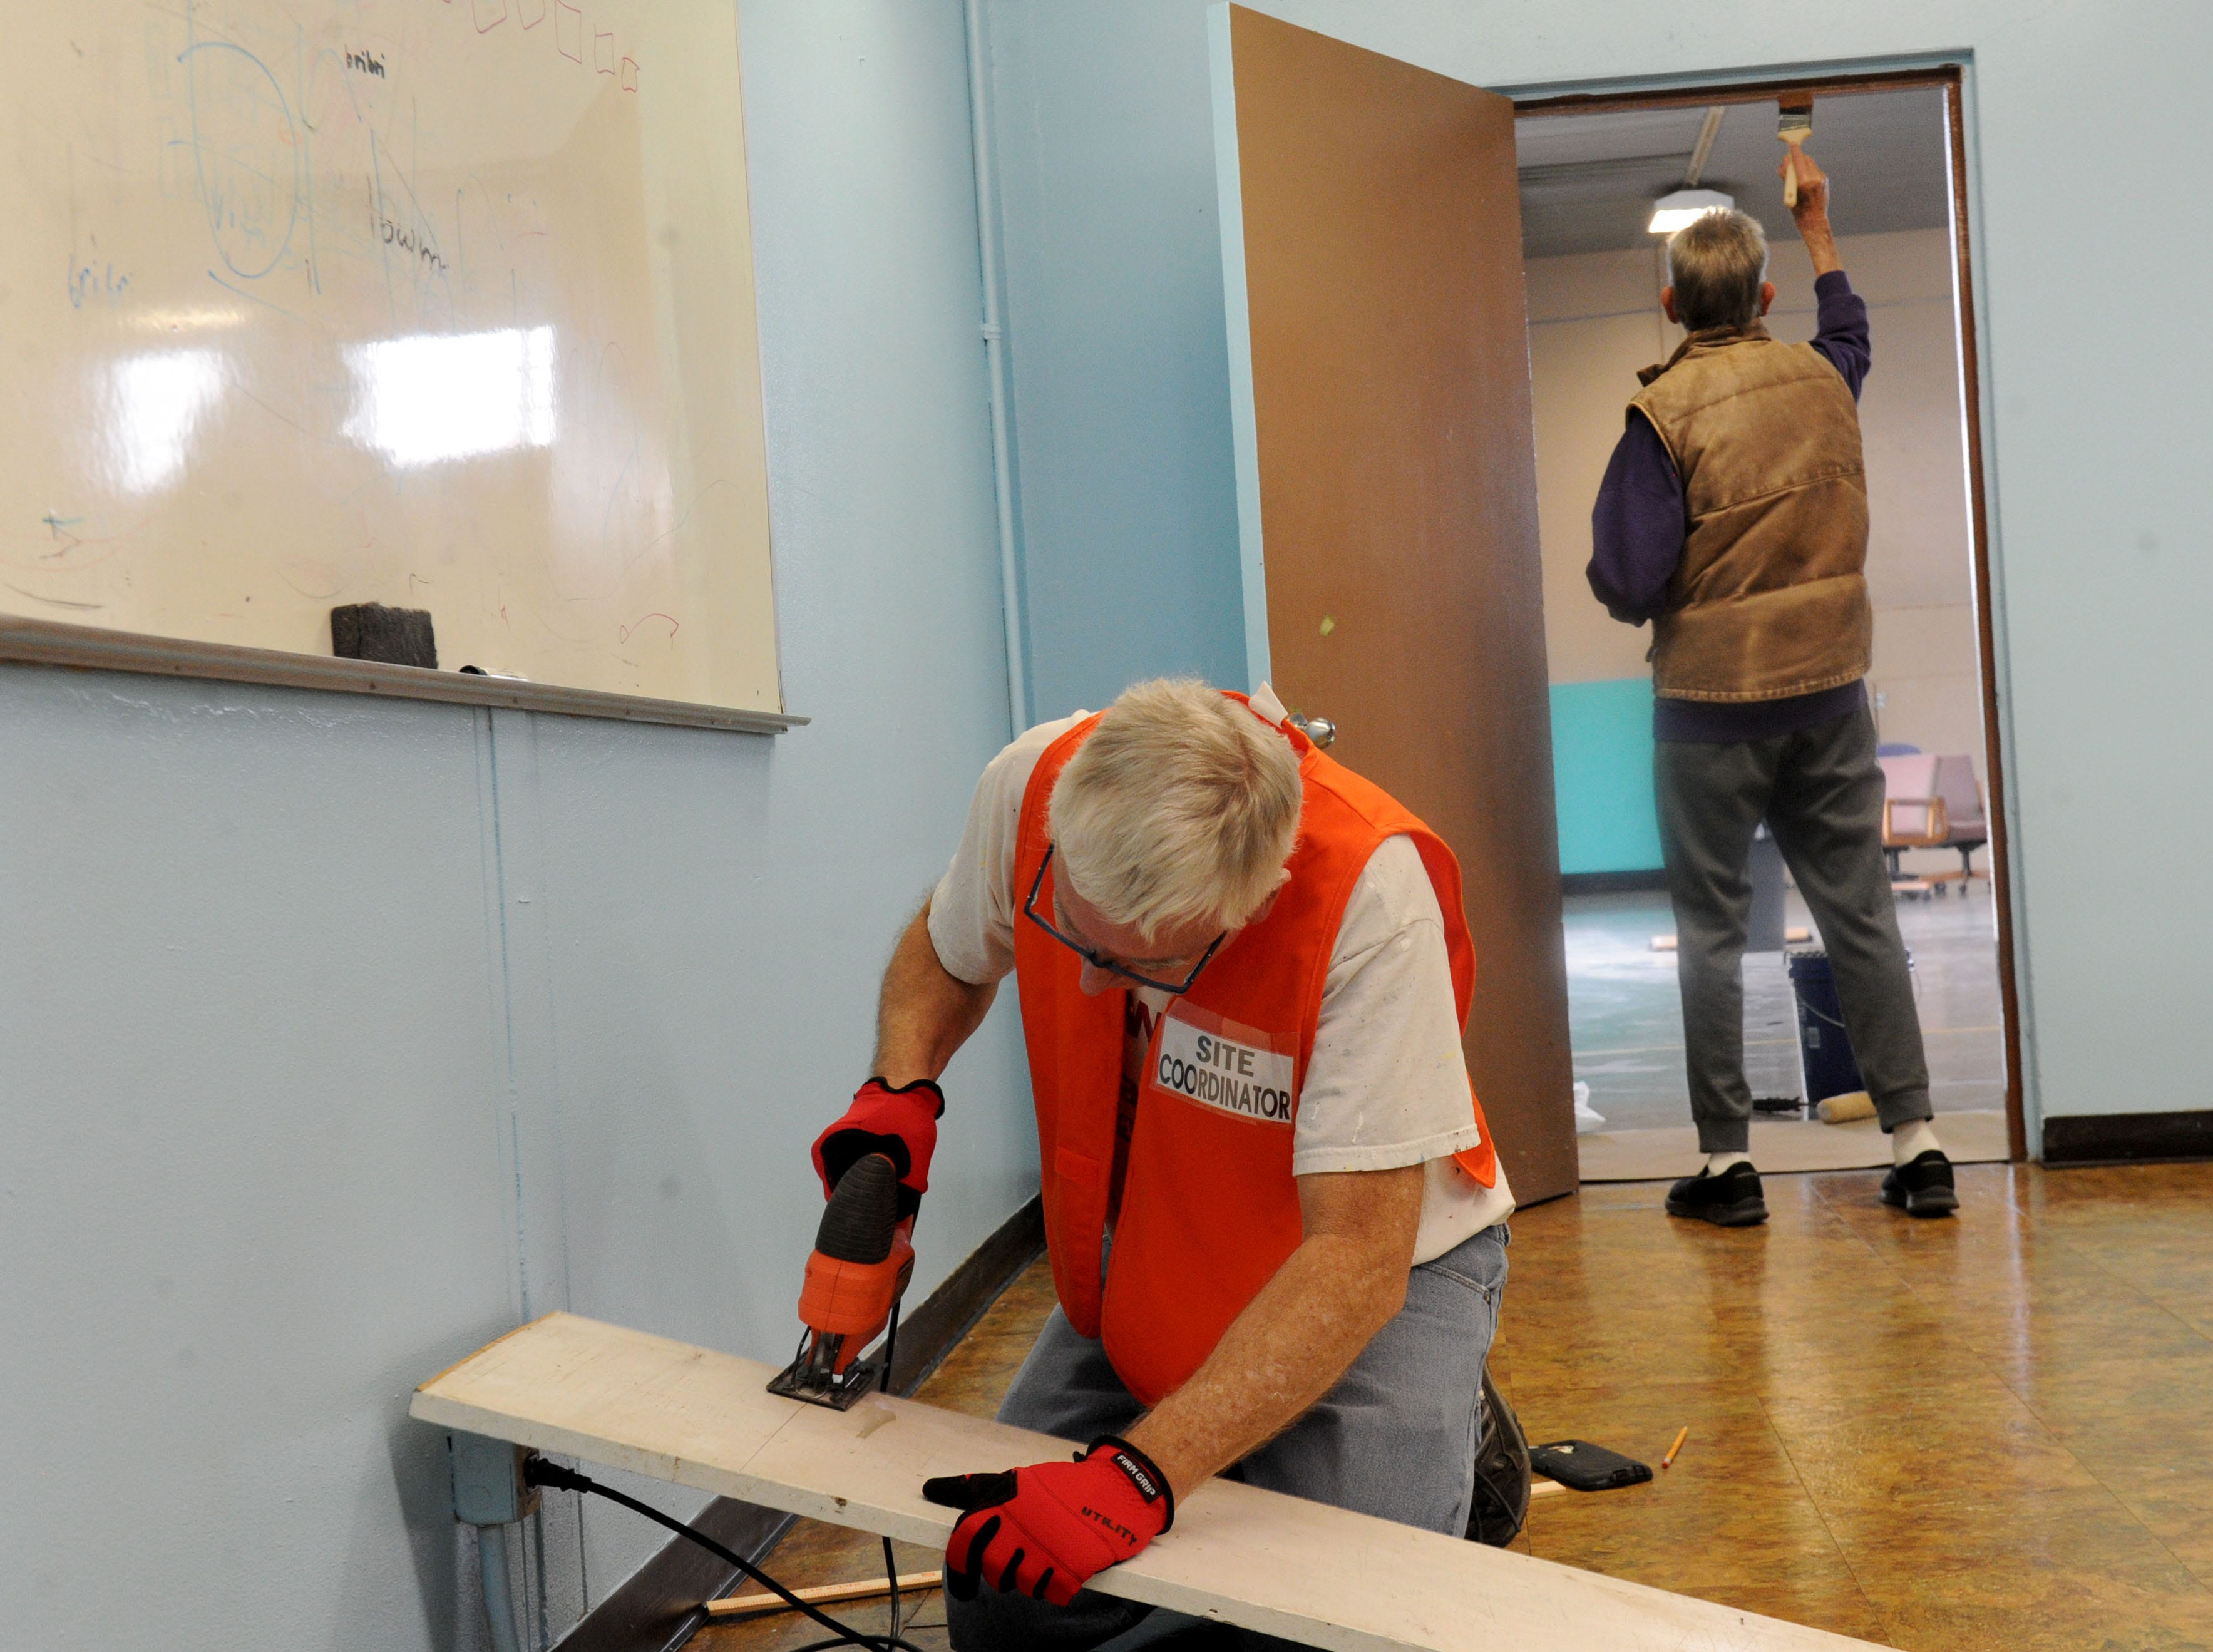 Karl Lawson, with the city of Oxnard's housing department, cuts a piece of wood to use on one of the beds at the homeless shelter as volunteers help get it ready to open. The 24-hour shelter is expected to open this month.